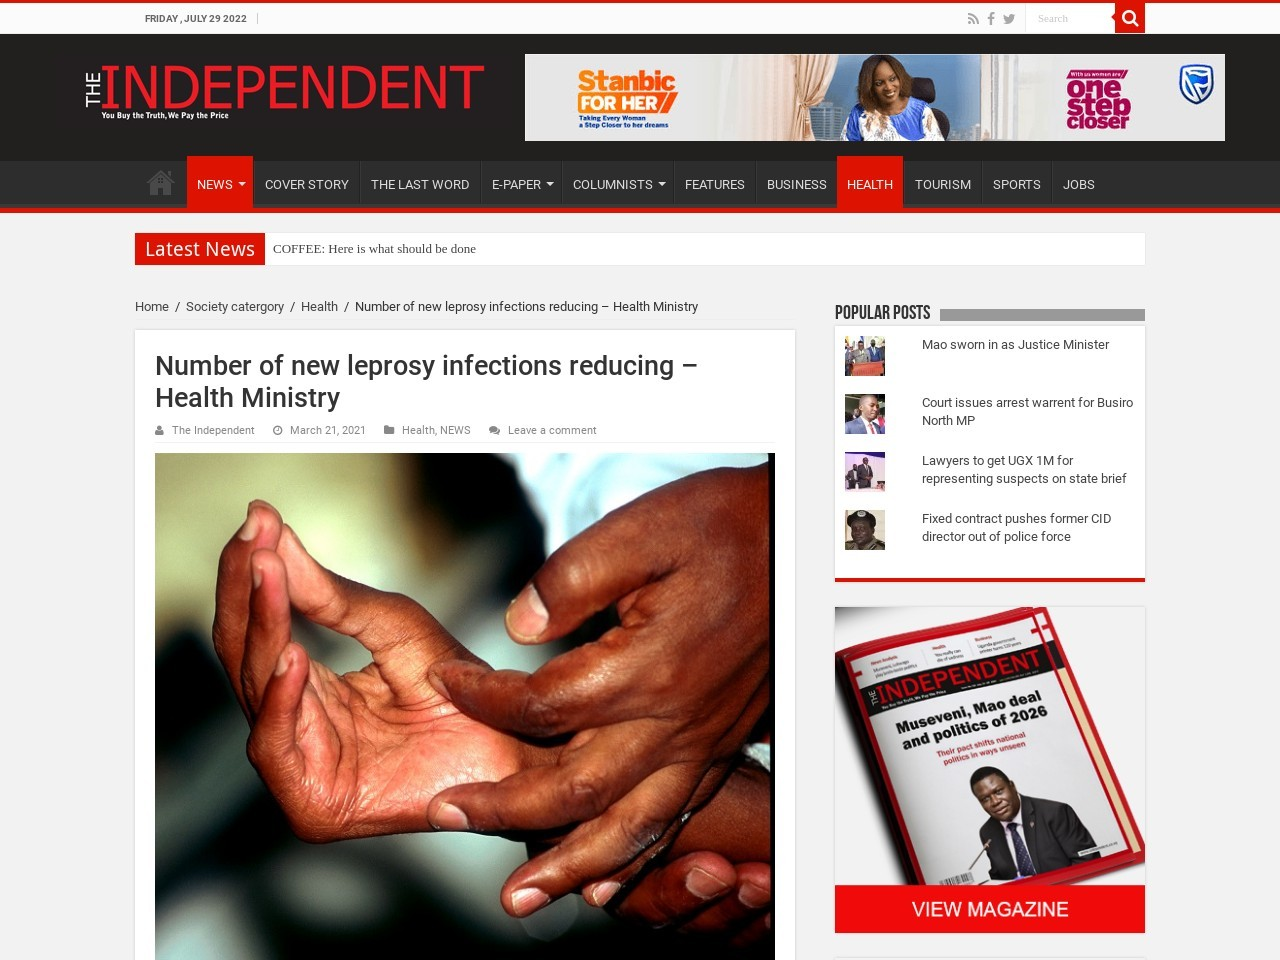 Number of new leprosy infections reducing - Health Ministry